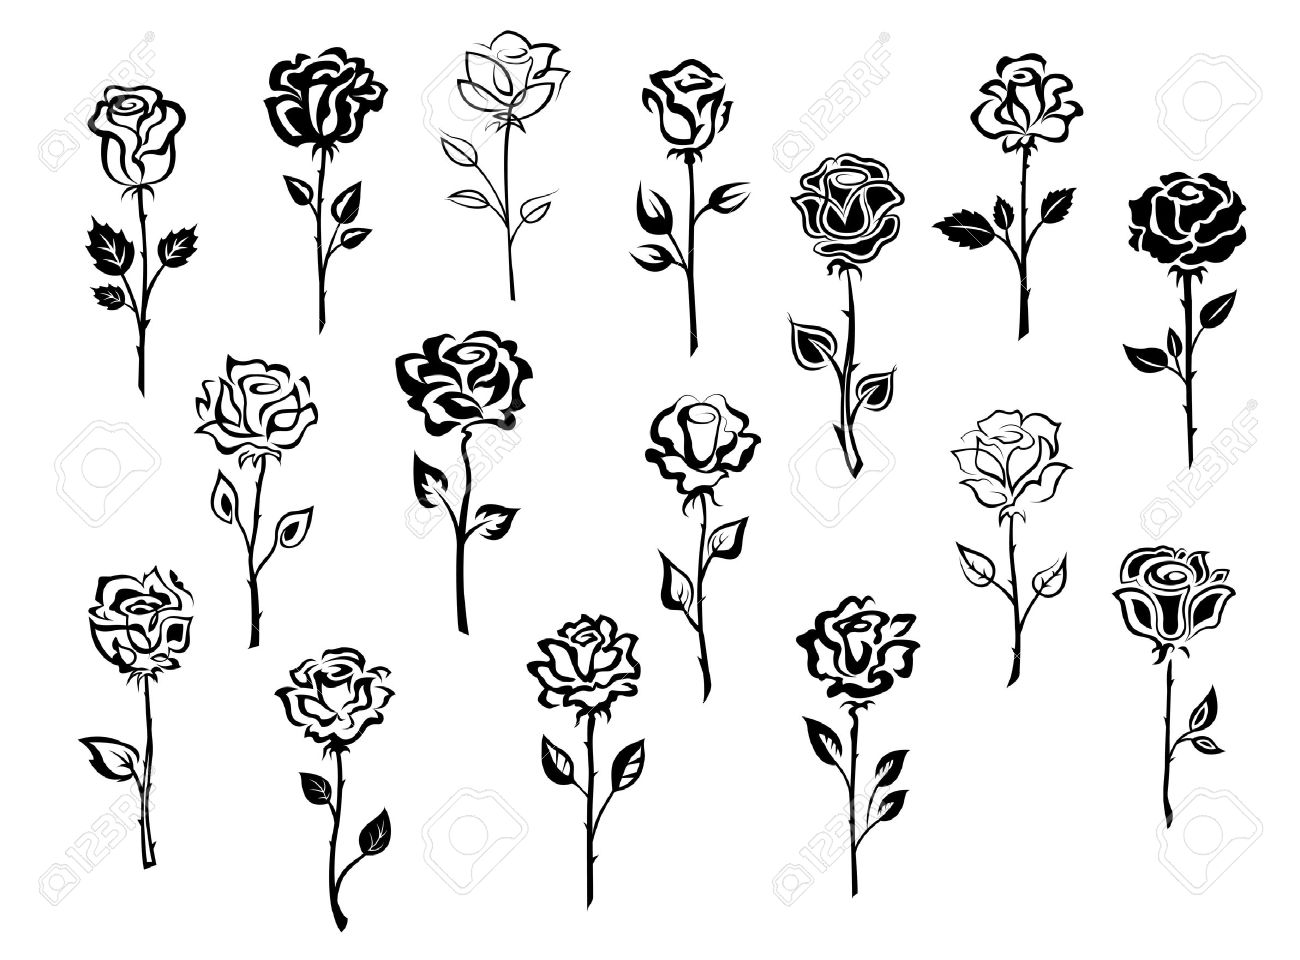 Black And White Collection Of Rose Icons In Sketch Style Each